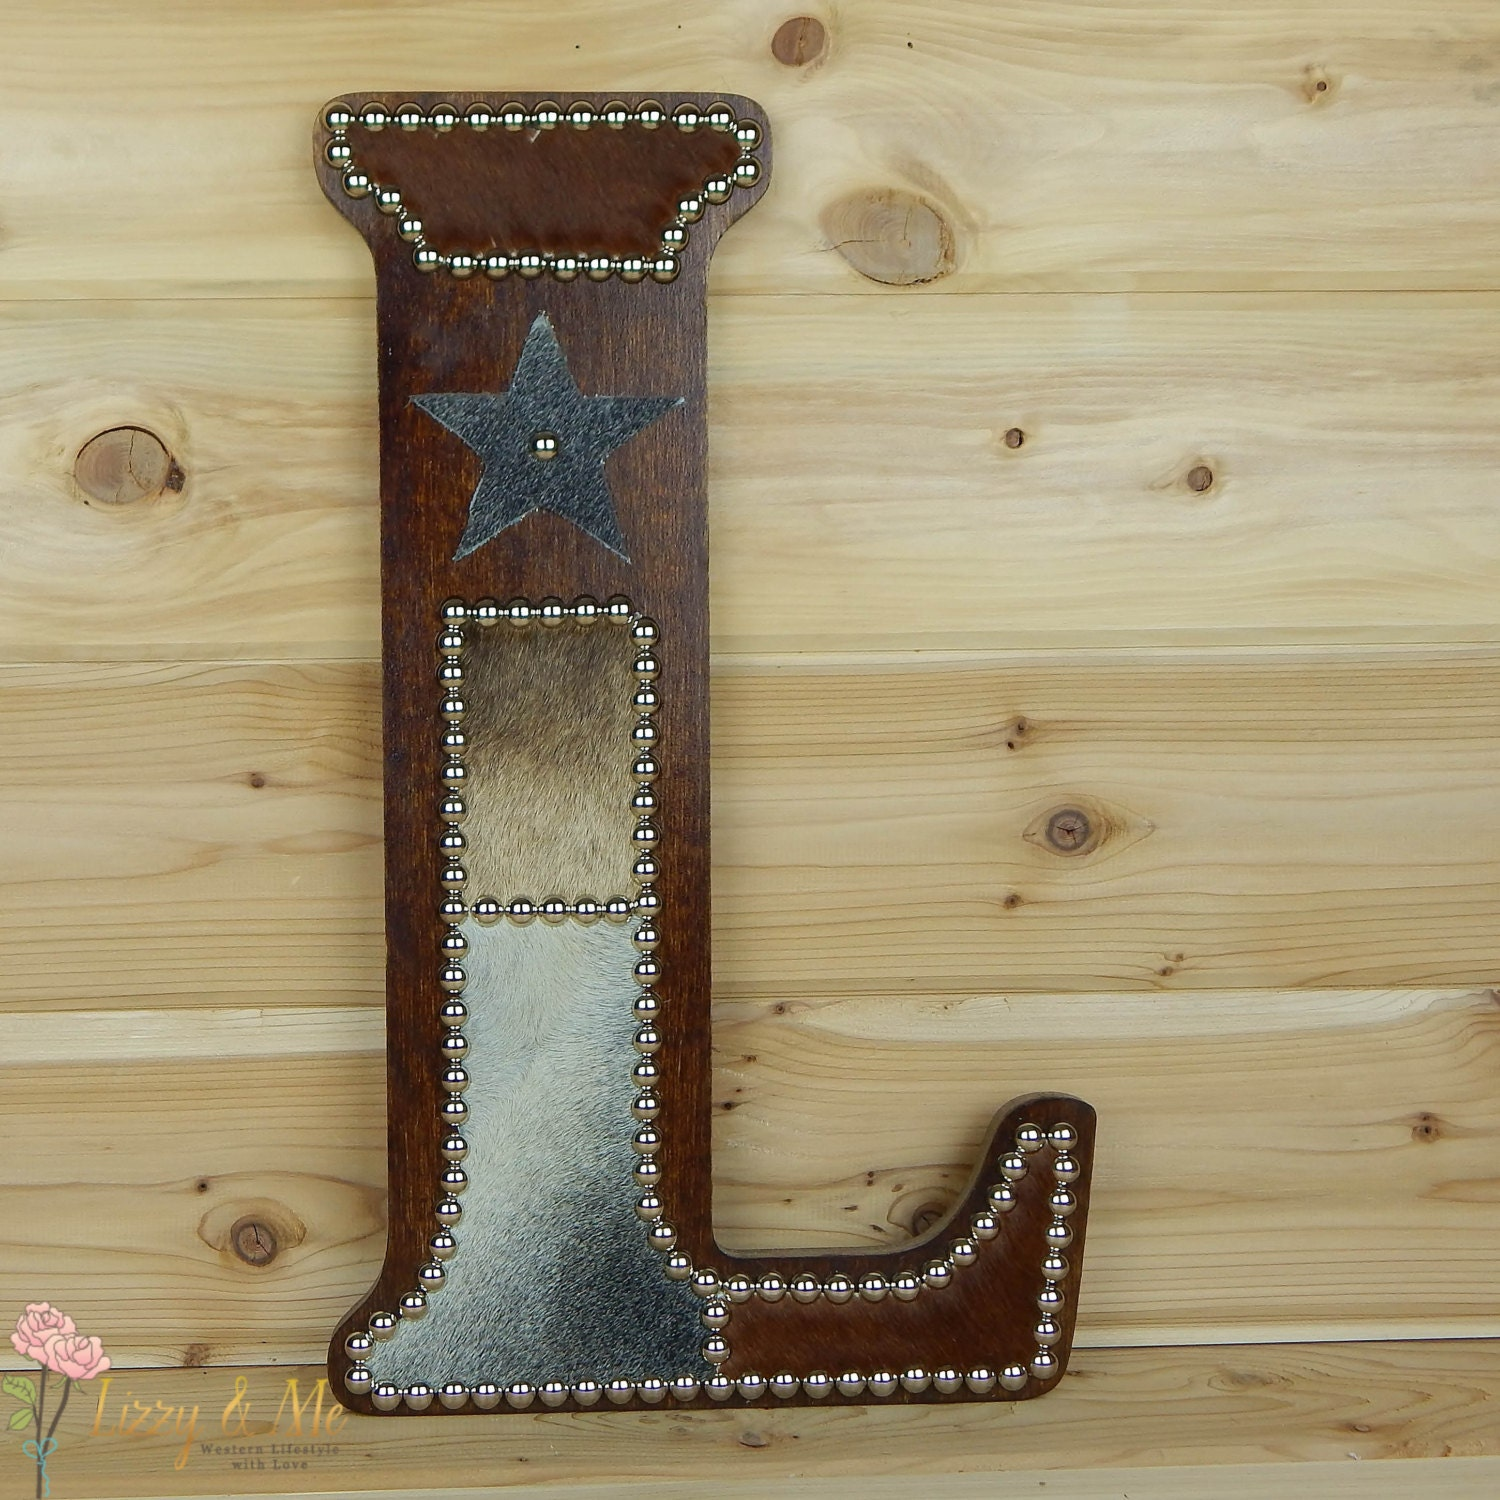 Western Home Decor: Cowhide Wall Letter L Western Home Decor Wall By LizzyandMe